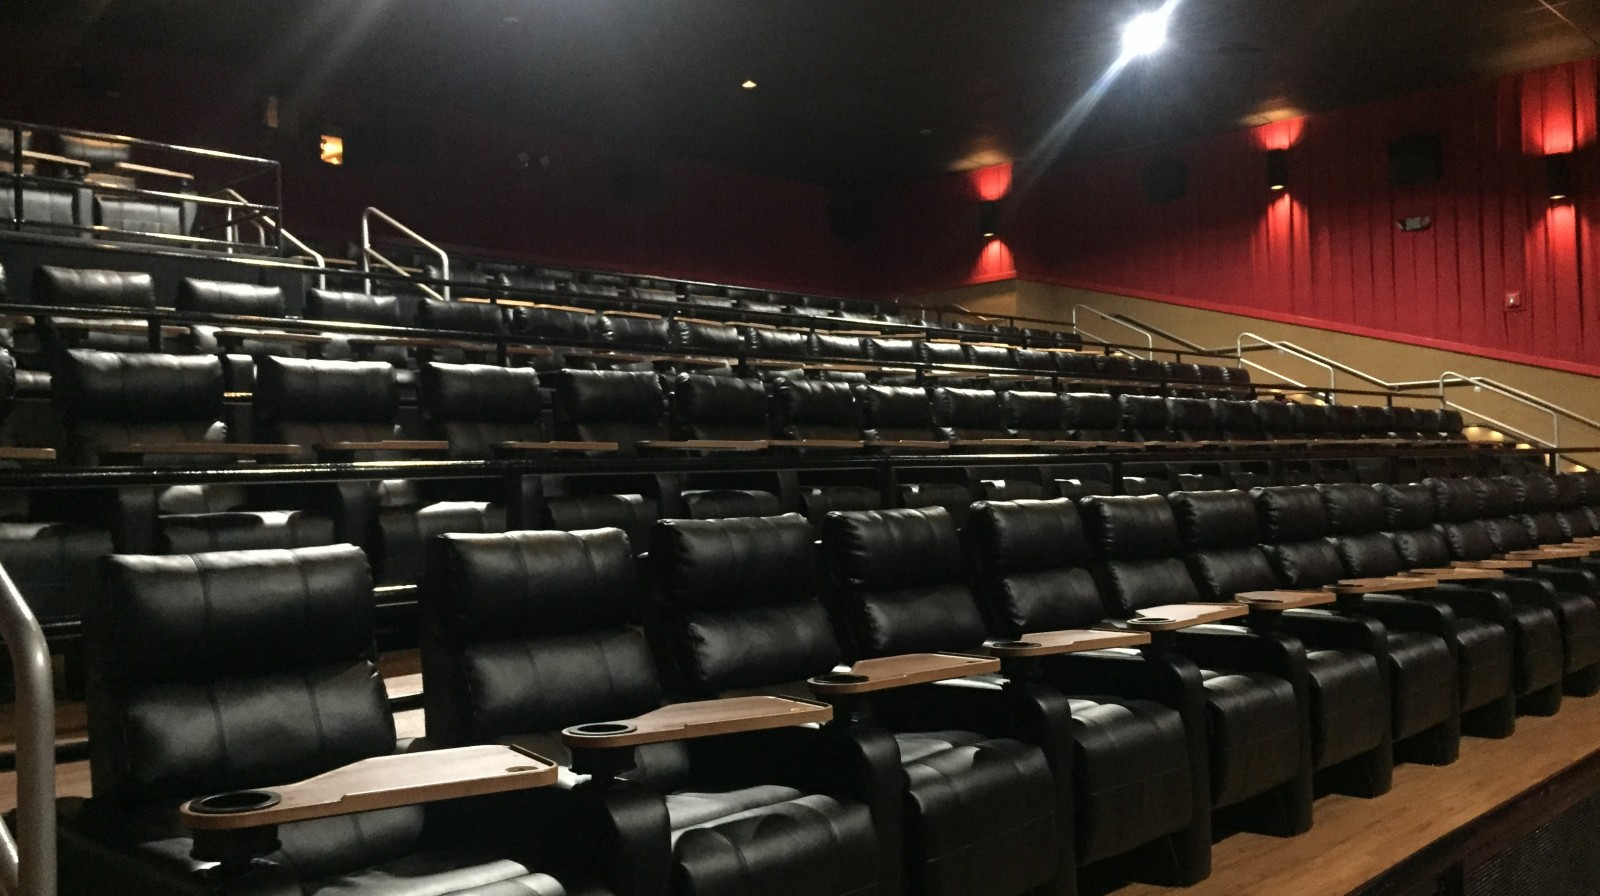 Recliners are coming to the Quaker Regal – The Buffalo News